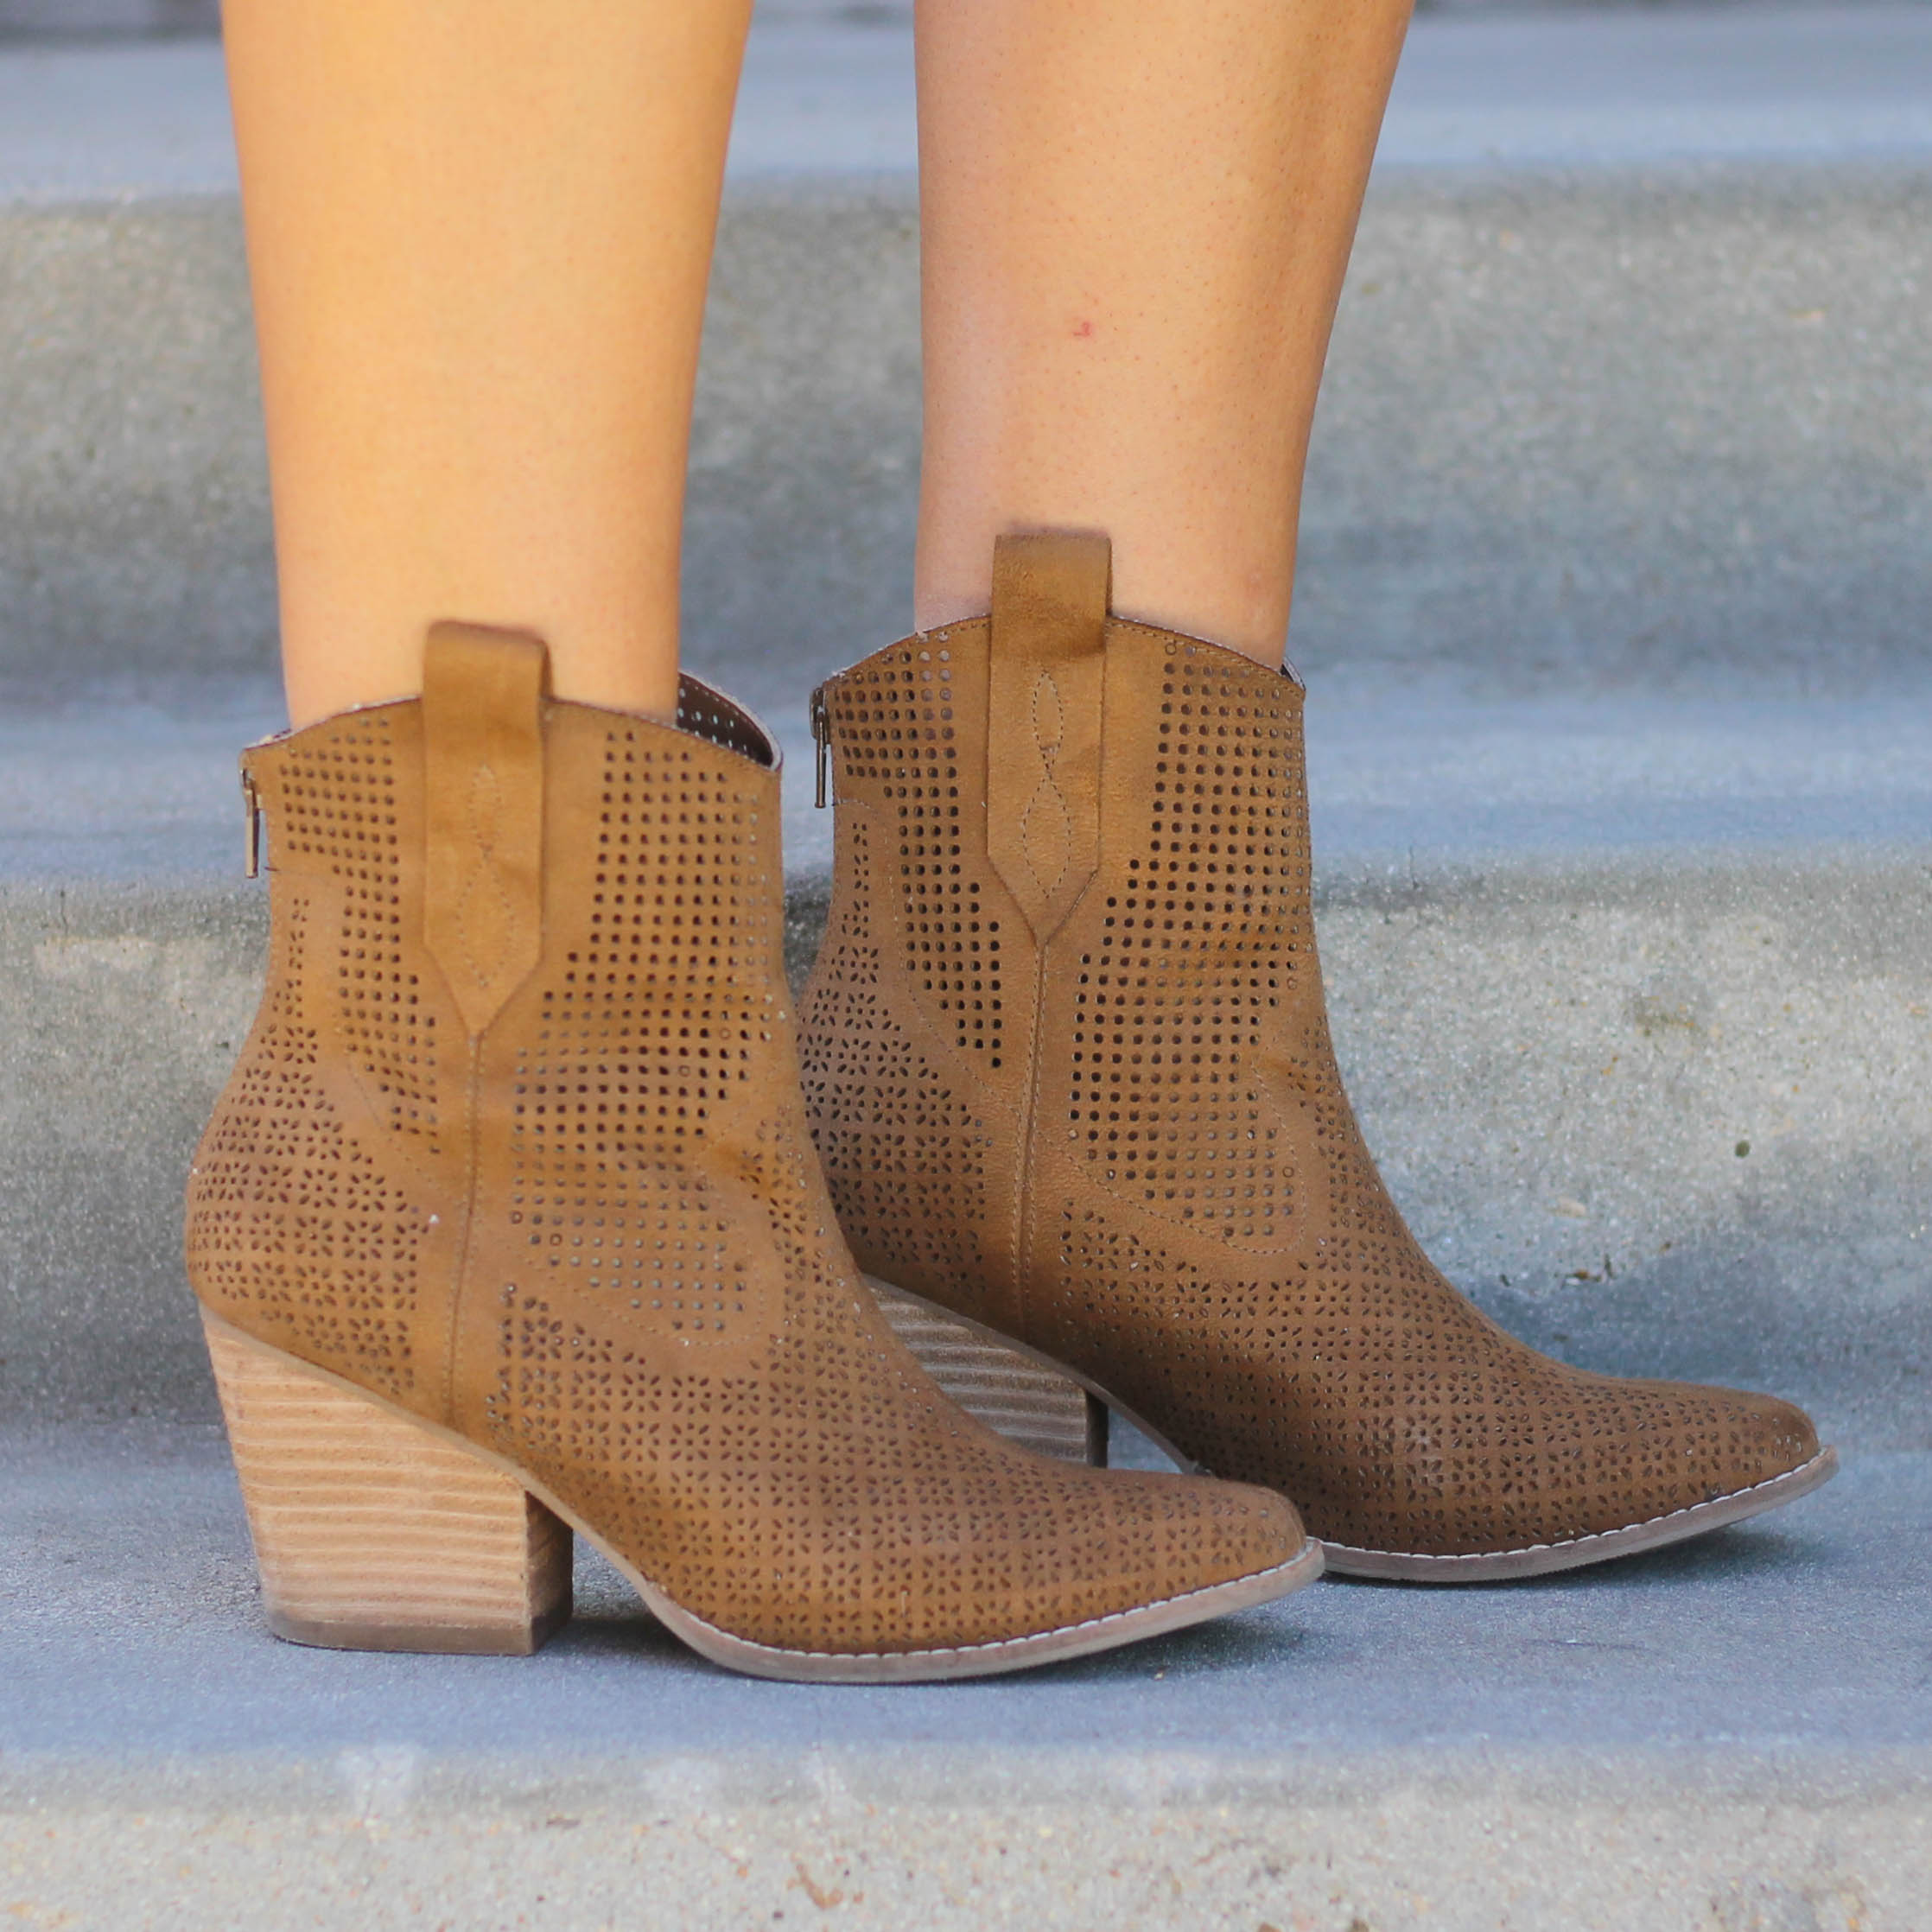 Matisse Backroad Ankle Boot in Tan